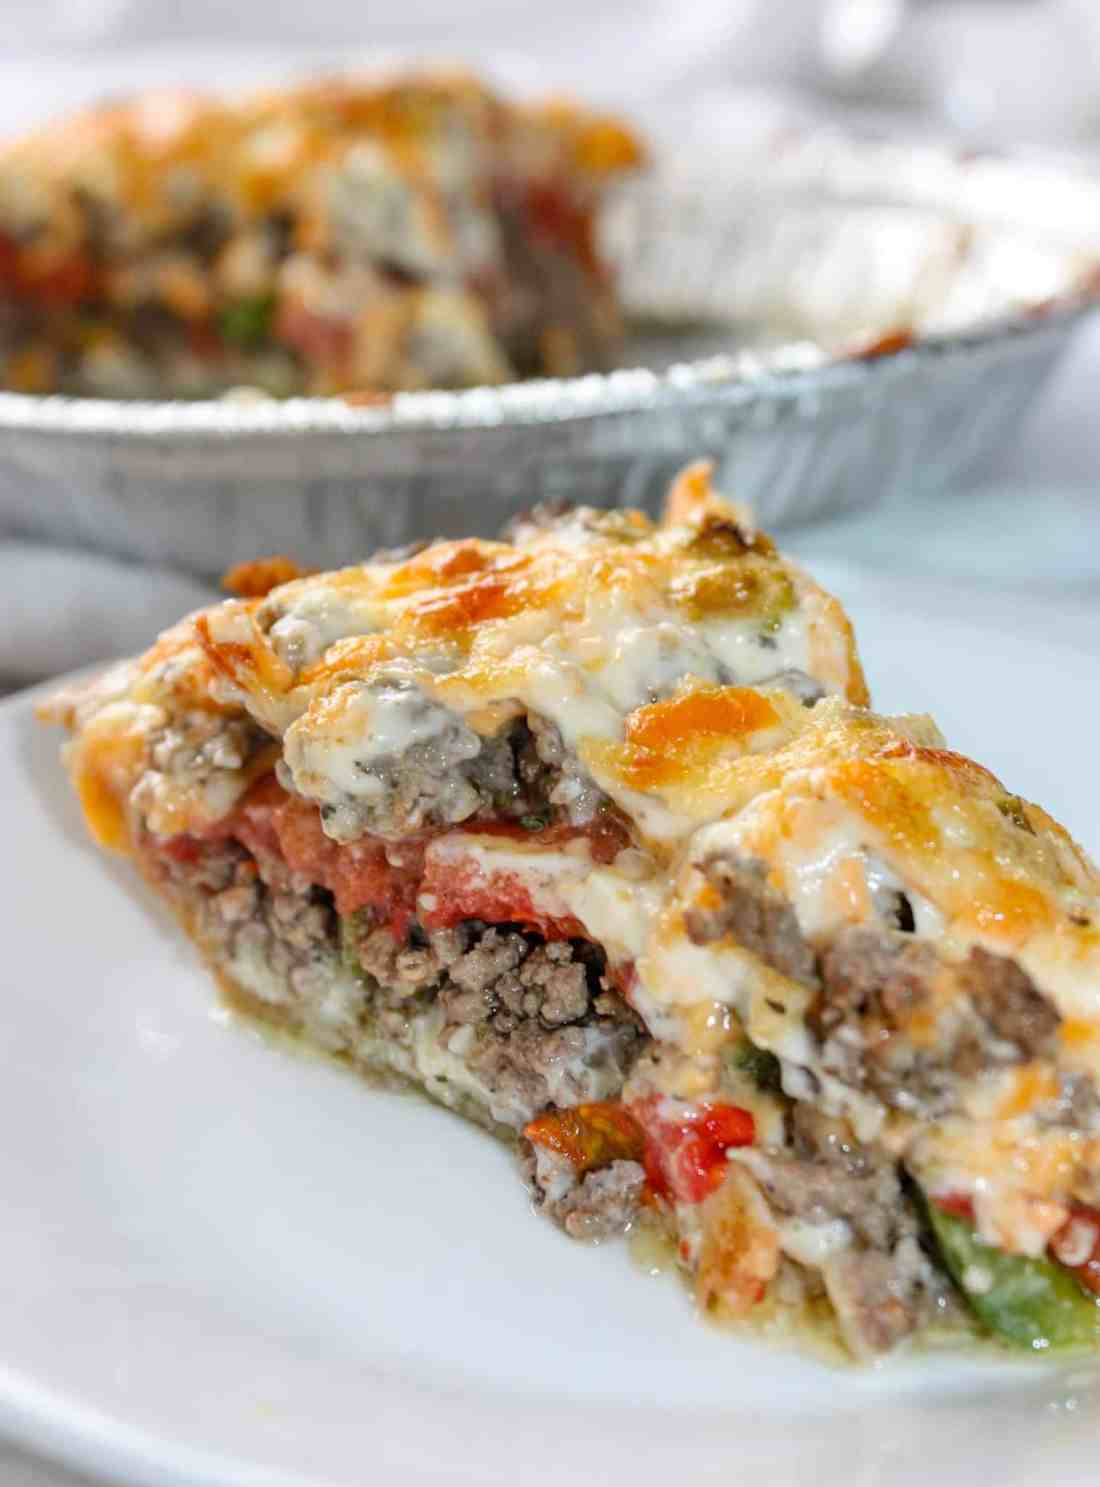 Beef and Tomato Pie is a delicious dinner recipe filled with ground beef, cheese, tomatoes and spices.